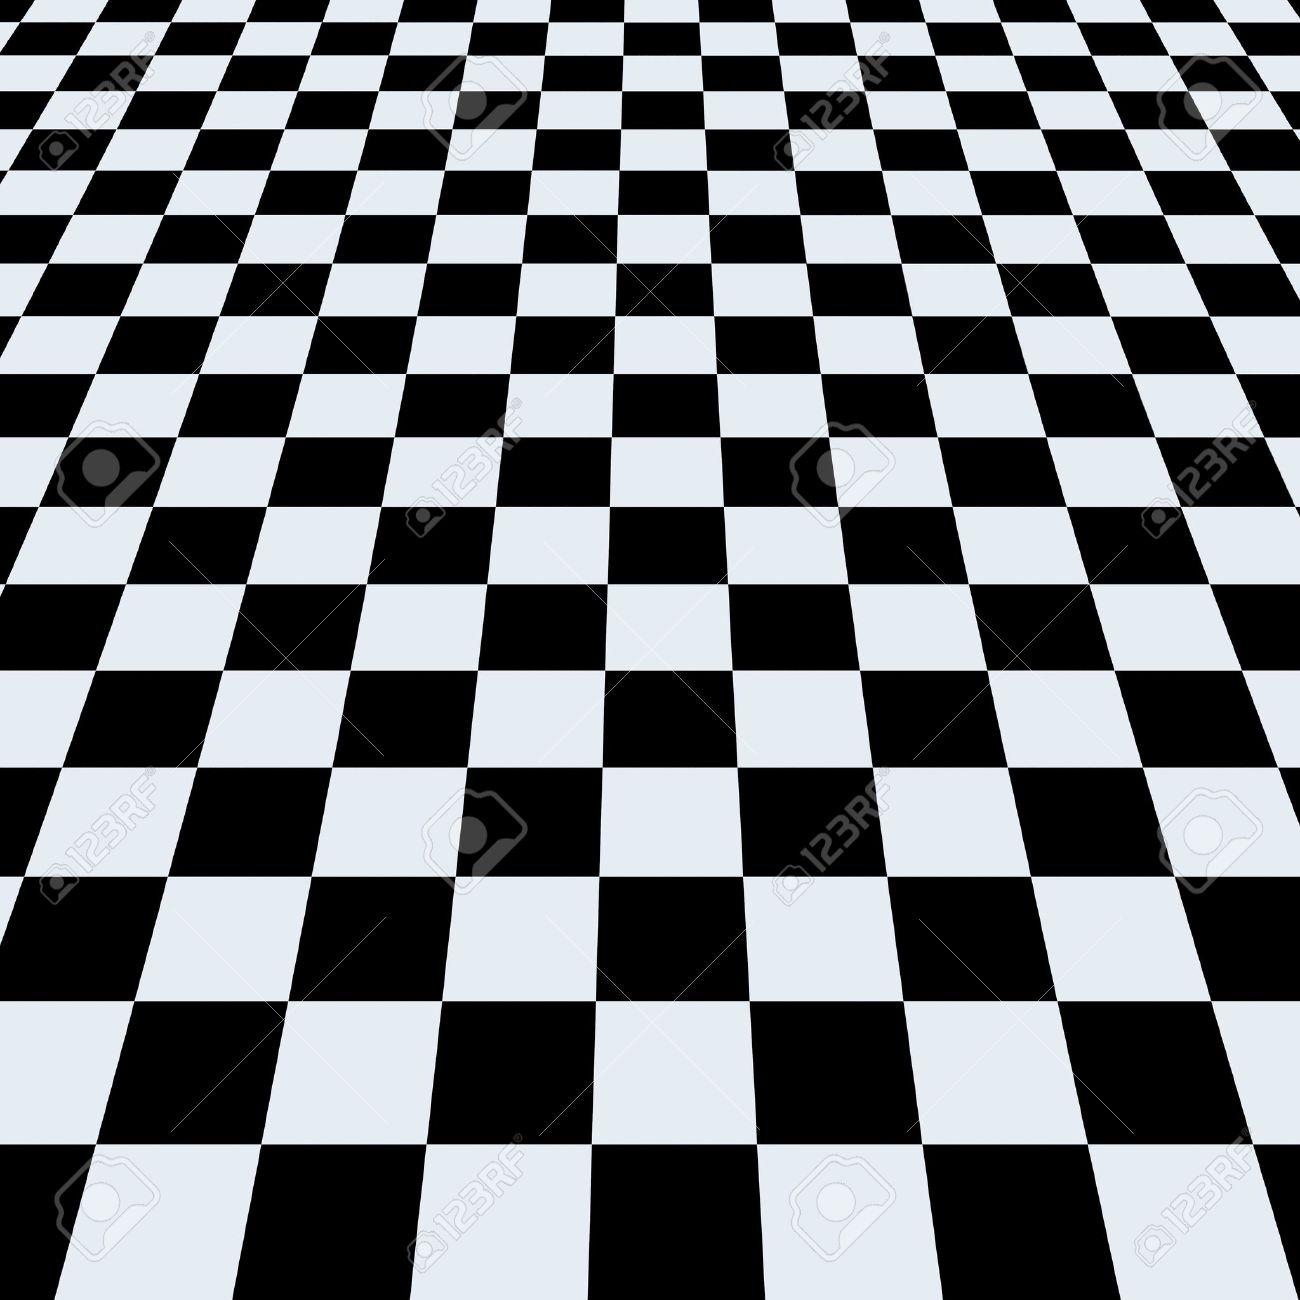 chess board images u0026 stock pictures royalty free chess board